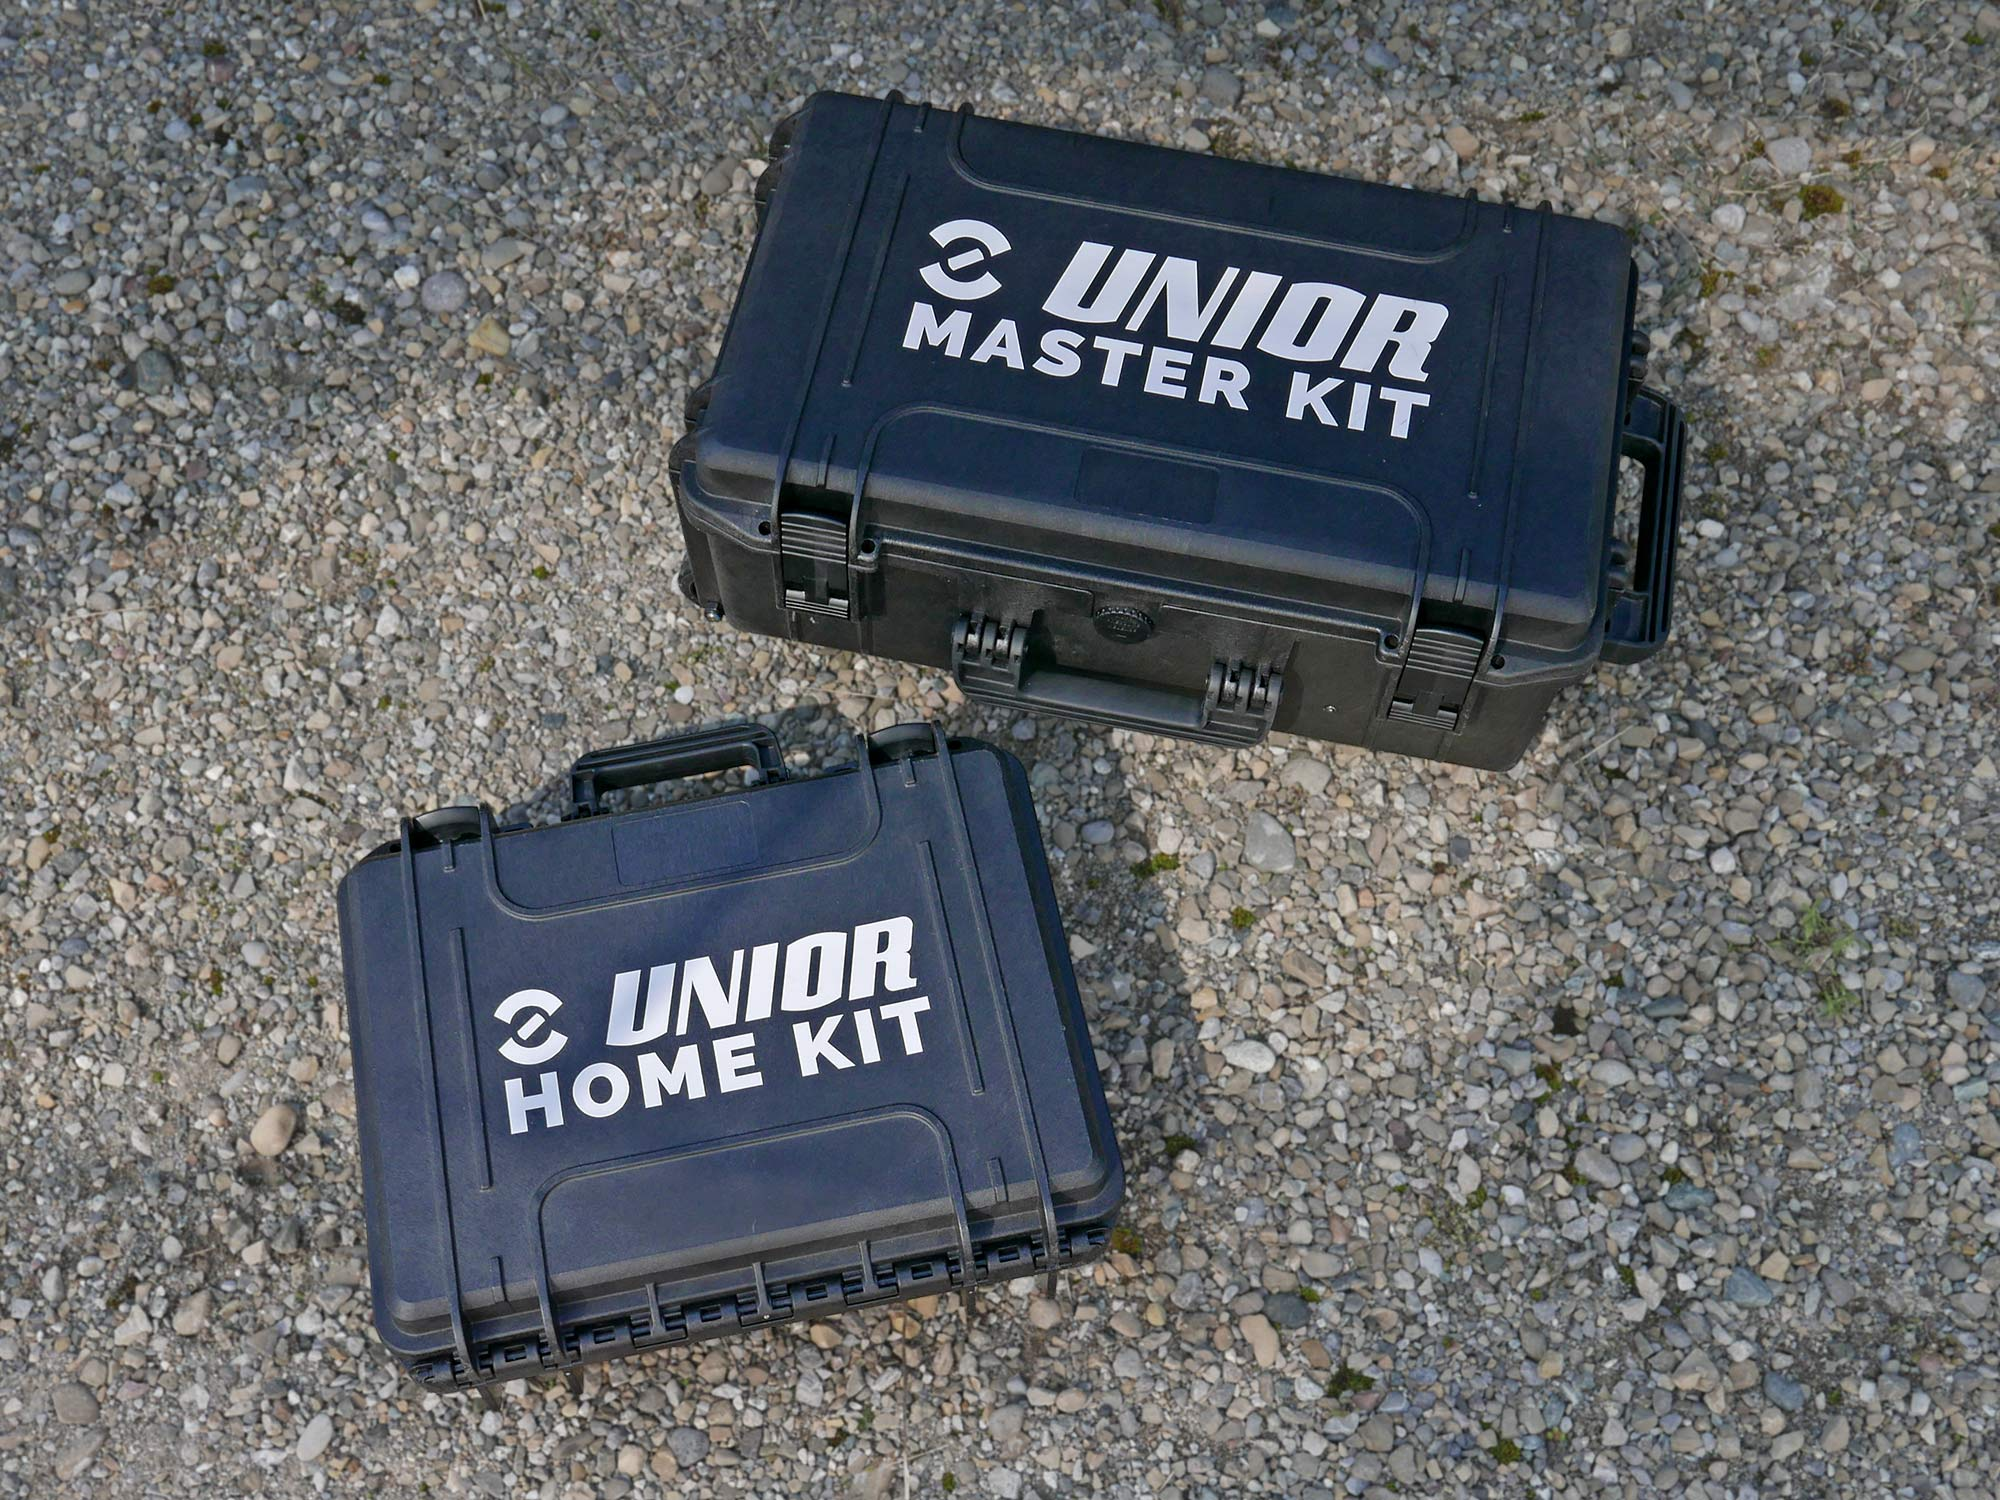 Unior professional bike tools made in Europe, Master & Home Kit toolboxes